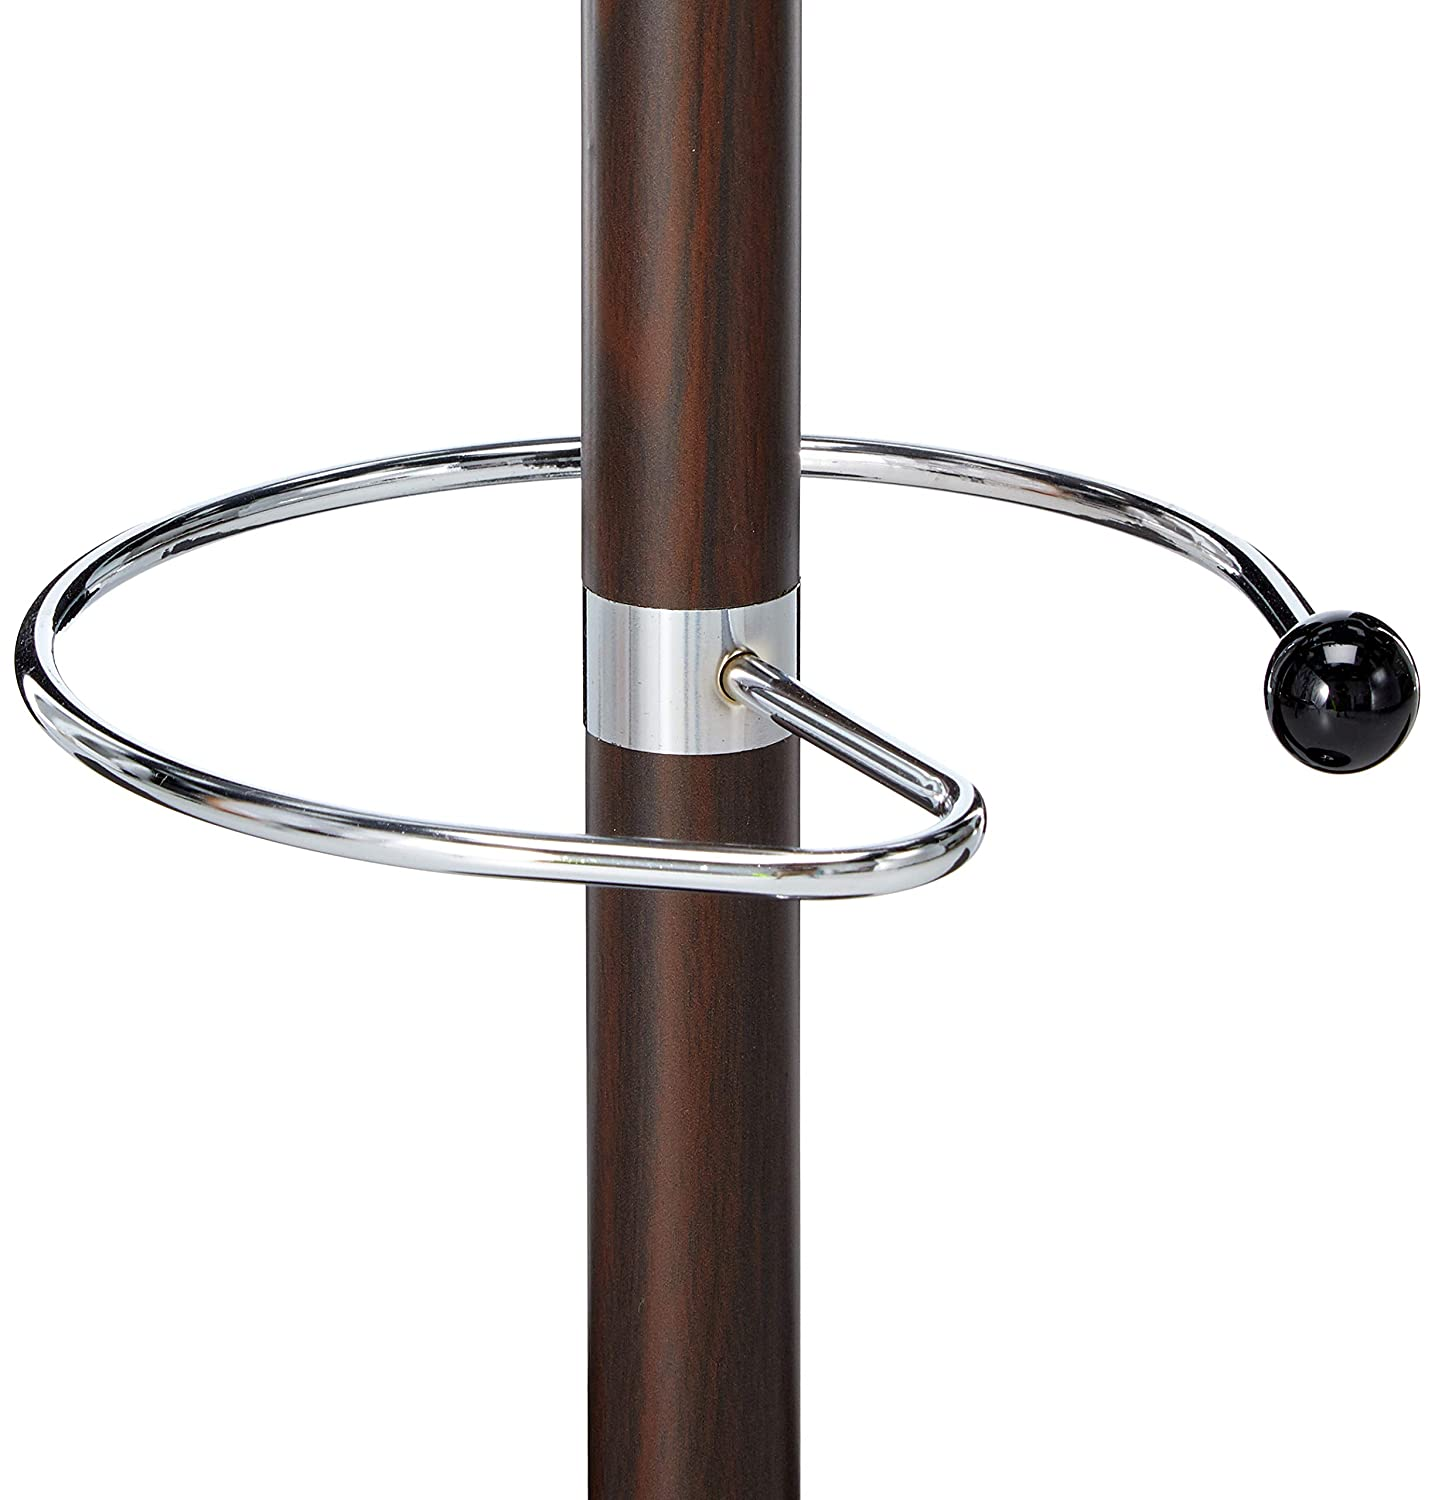 Uniware Heavy Duty Metal Coat Rack with PVC Coated with Umbrella Stand, 14 Hooks, 70 Inch, Stable Marble Base Stand, Brown